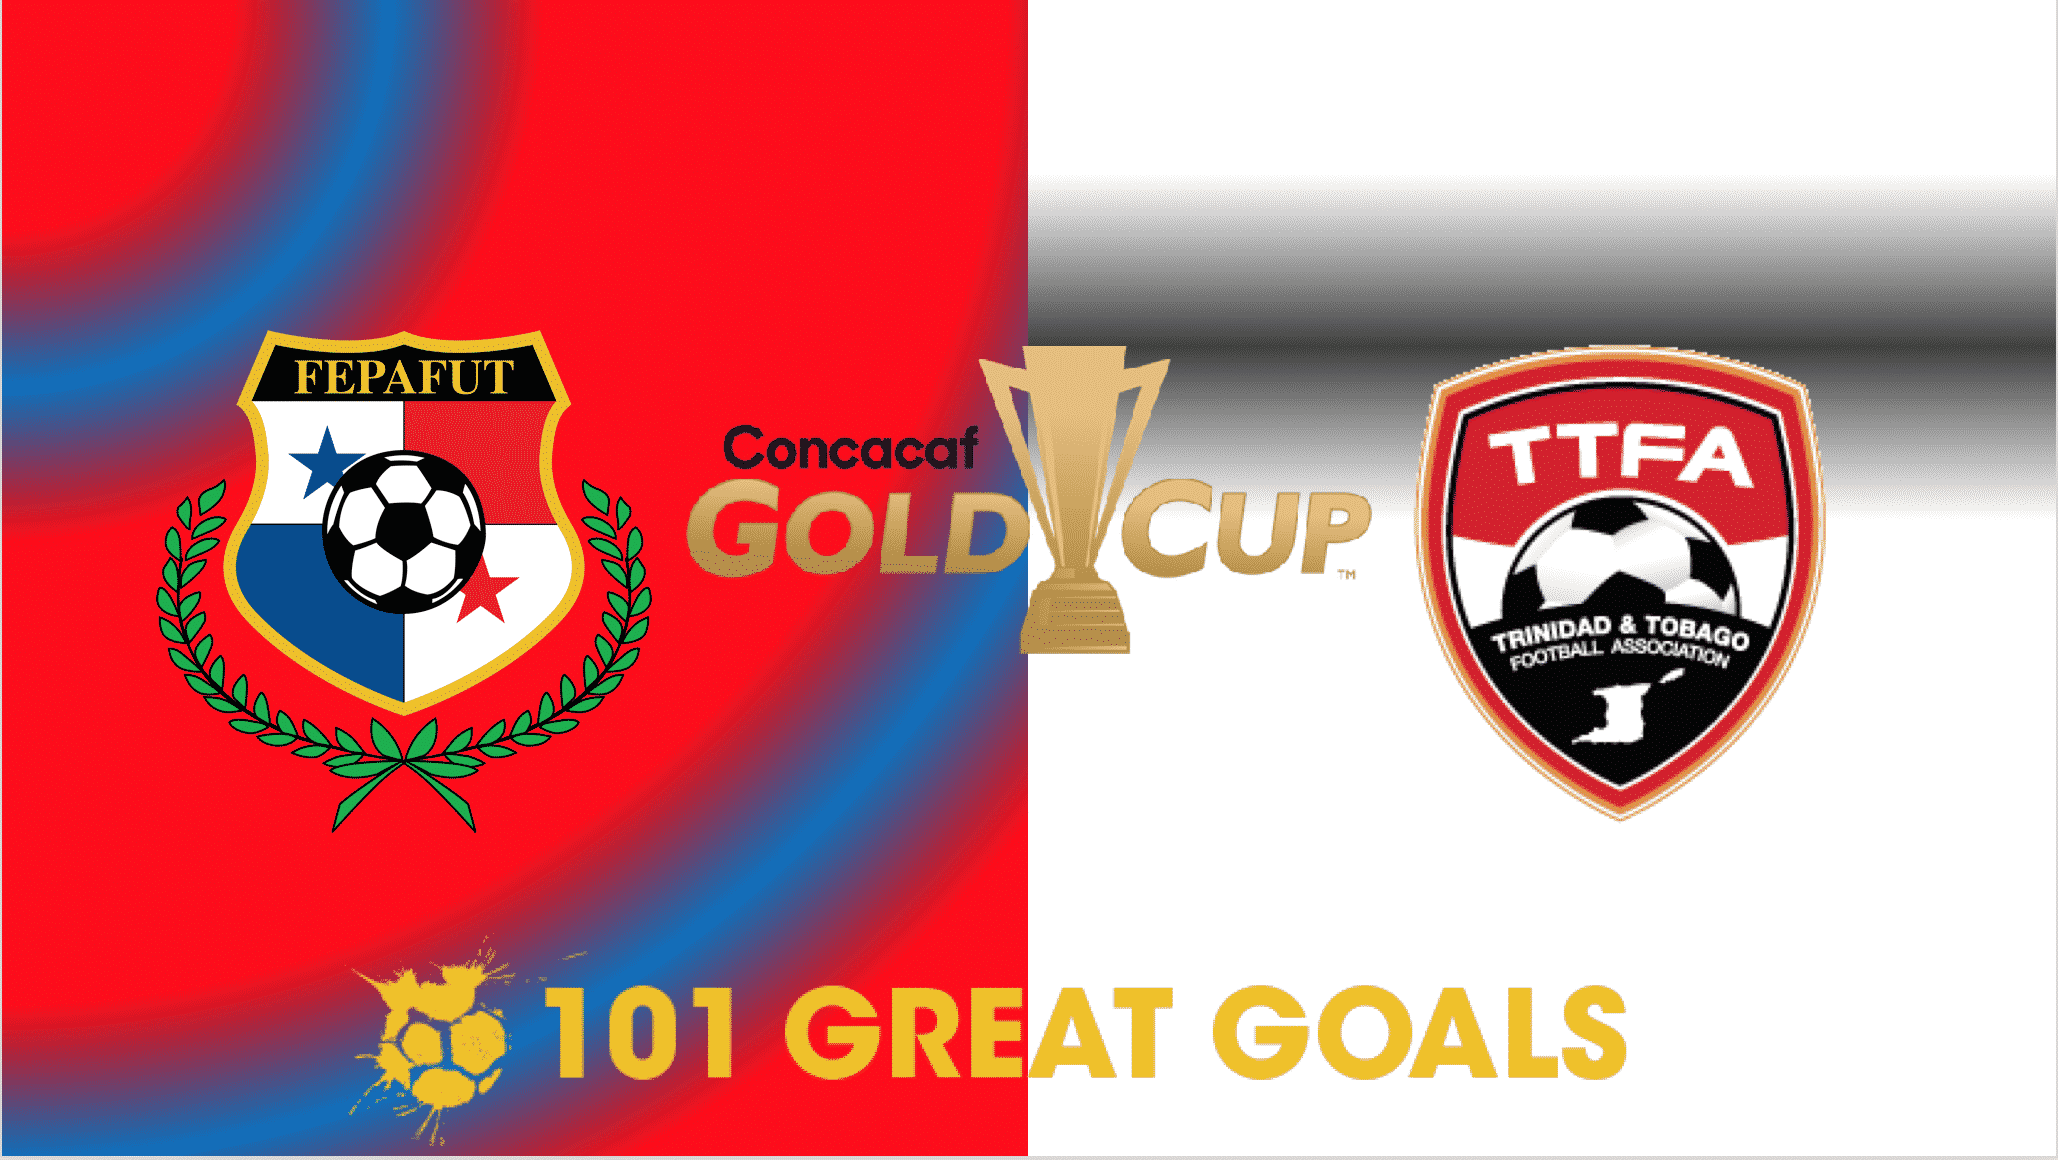 Panama vs Trinidad & Tobago live streaming